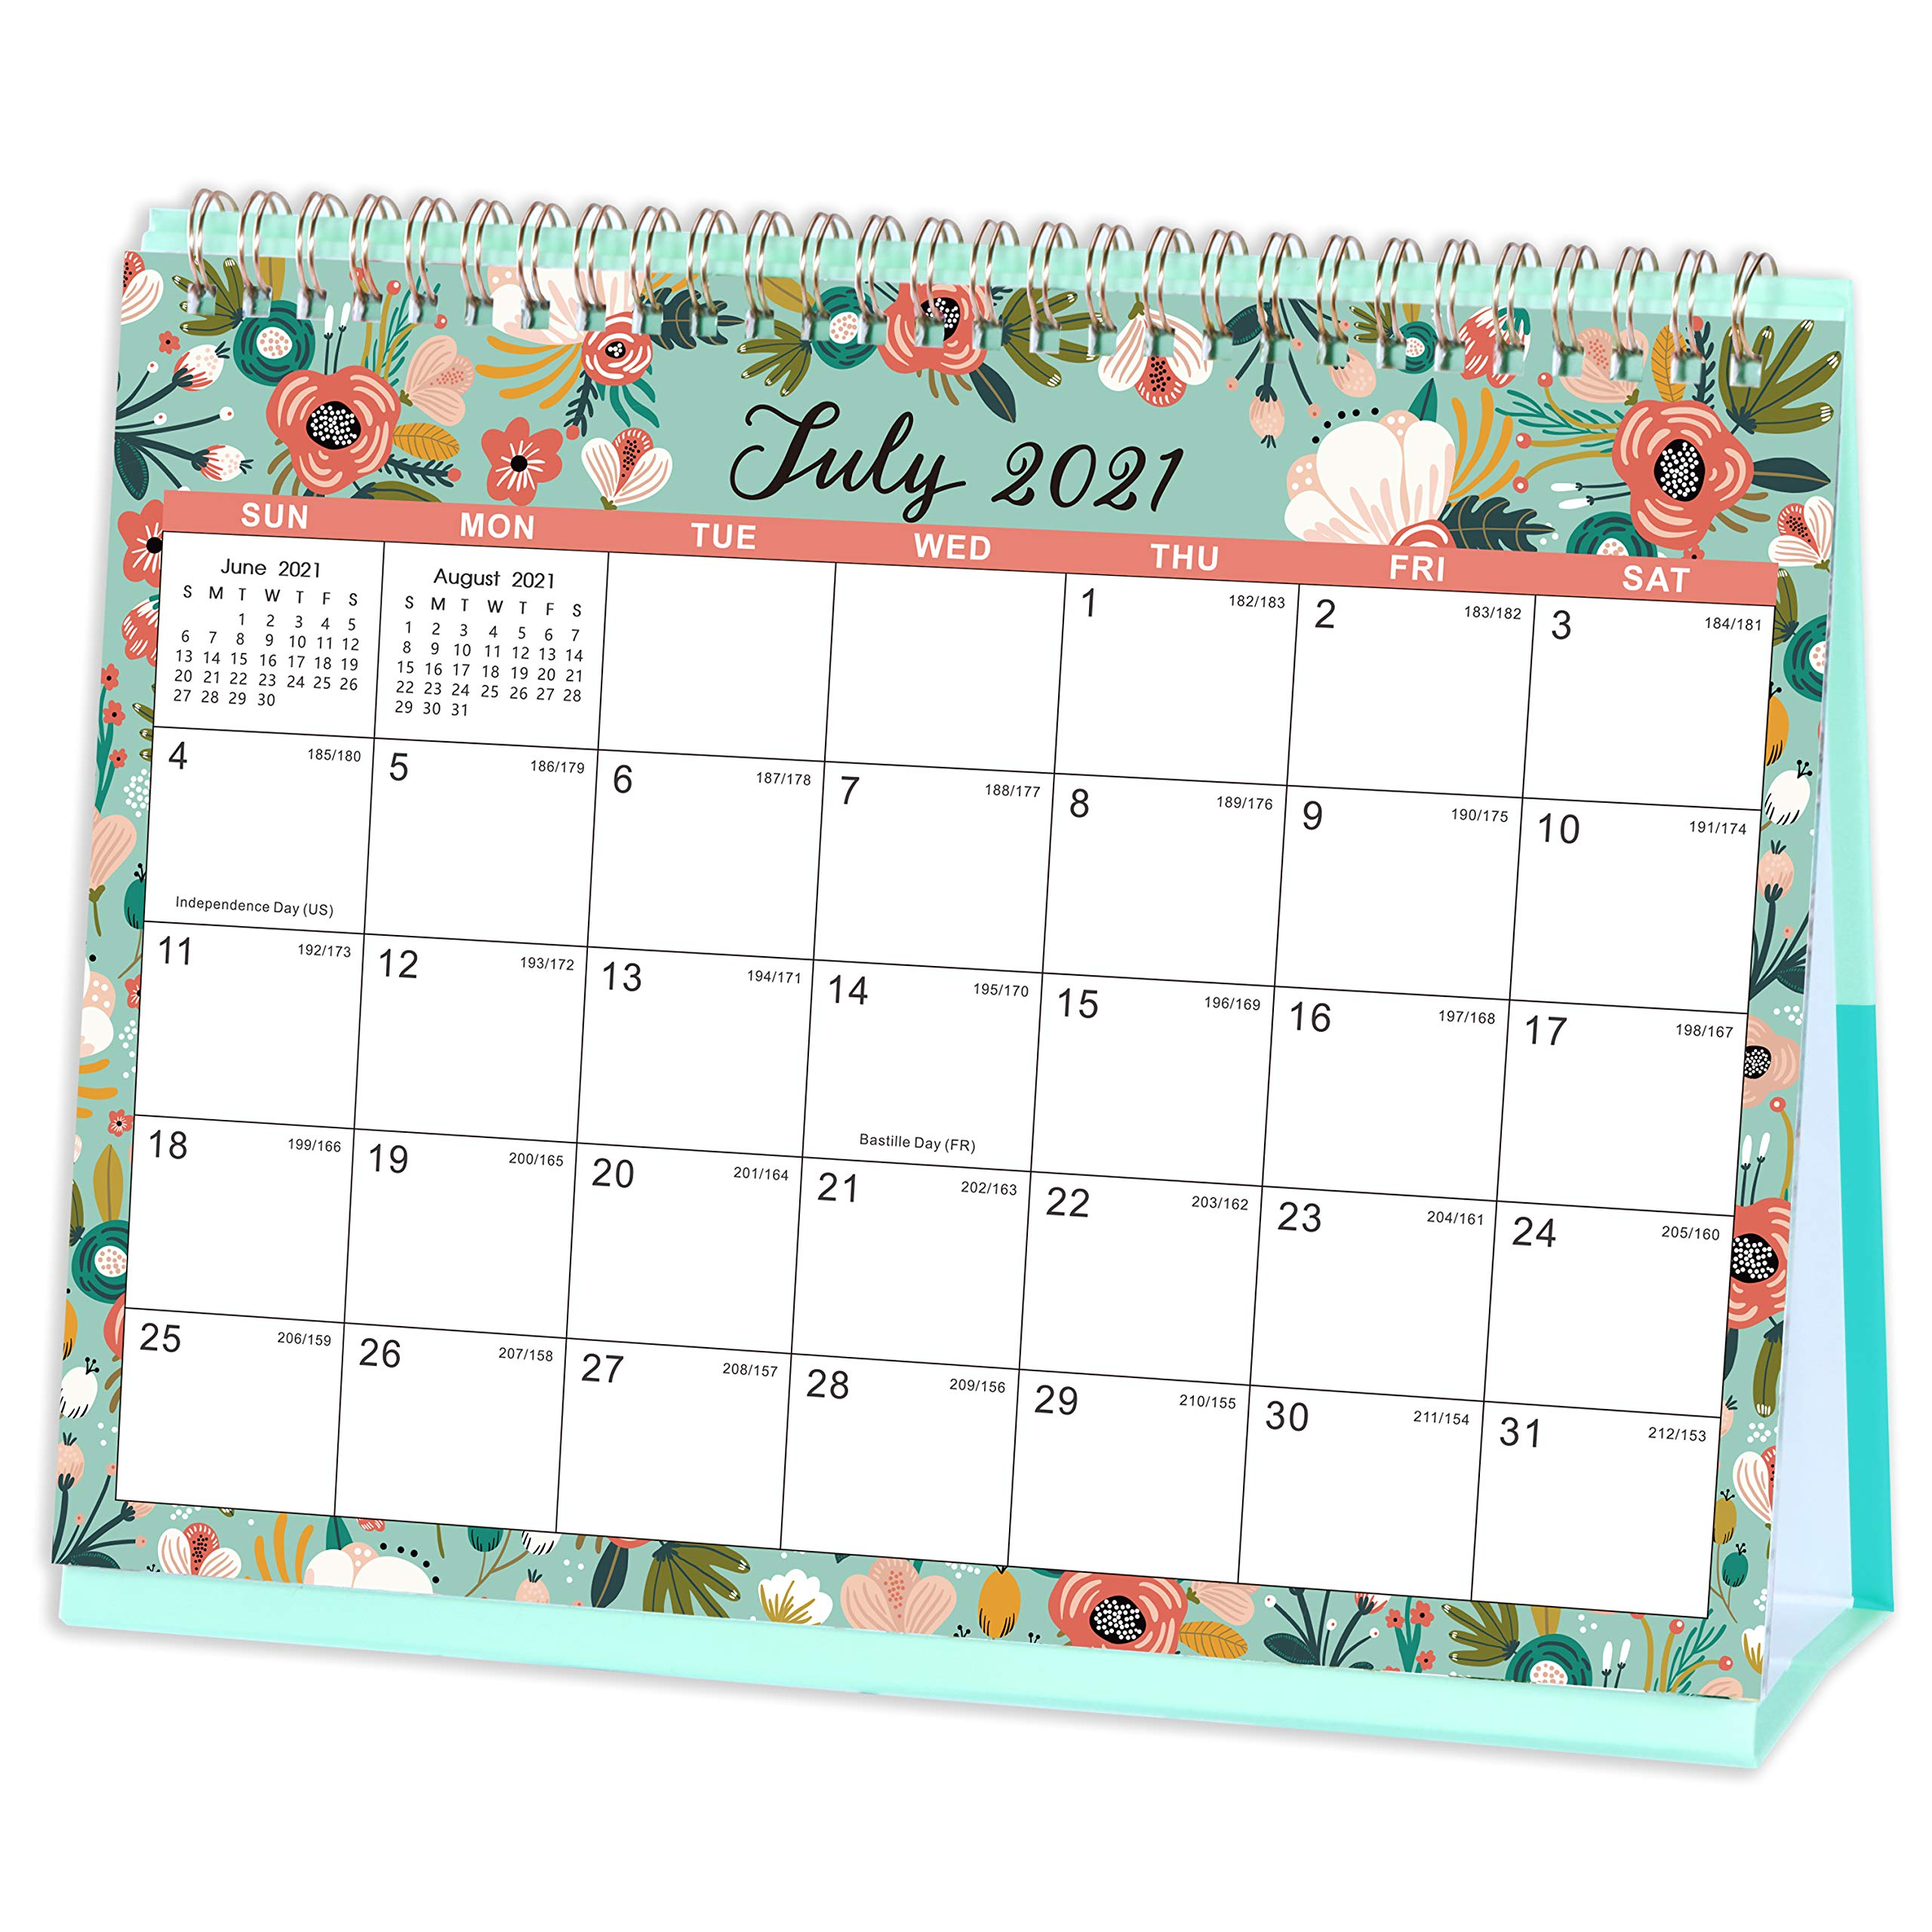 2022 Desktop Calendar.2021 2022 Desk Calendar Calendar 2021 2022 Desktop Calendar Generous Memo Lined Pages With Thick Paper July 2021 December 2022 10 X 8 3 Stand Up Desk Calendar With Strong Twin Wire Binding Buy